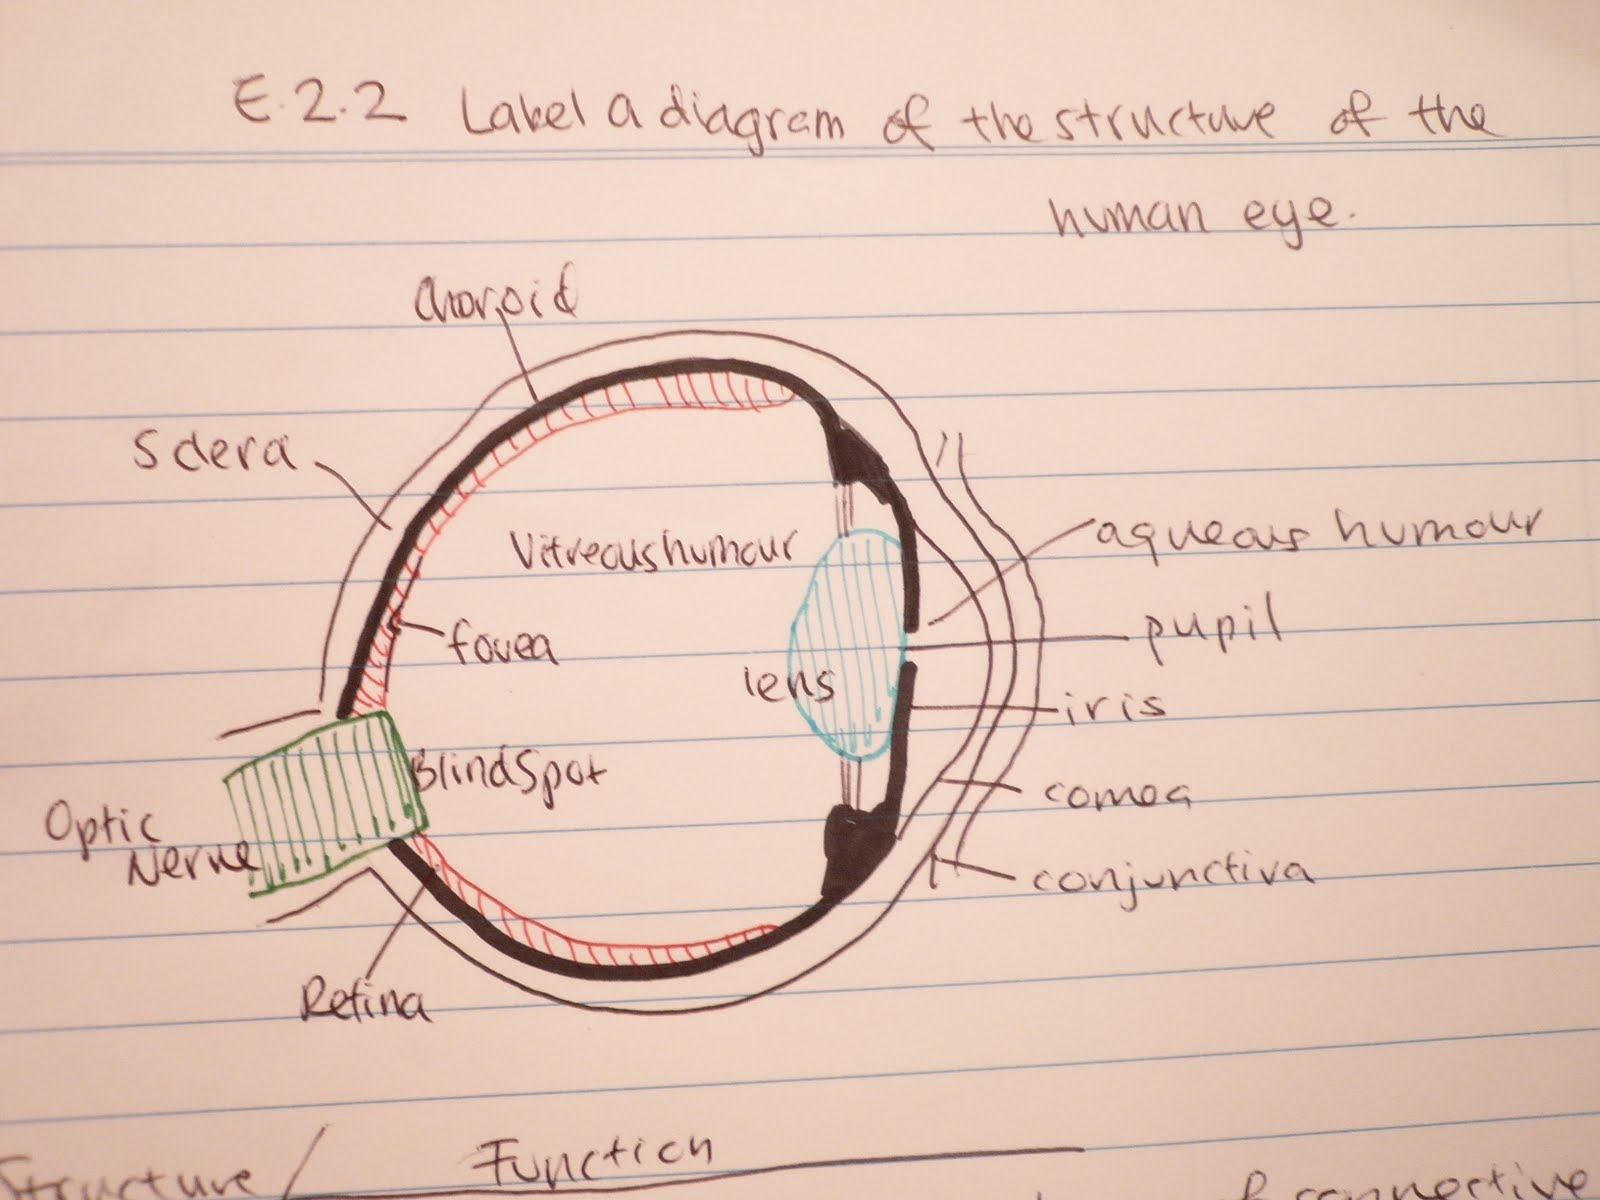 Tiffanys biology blog e22 label a diagram of the structure of e22 label a diagram of the structure of the human eye ccuart Images